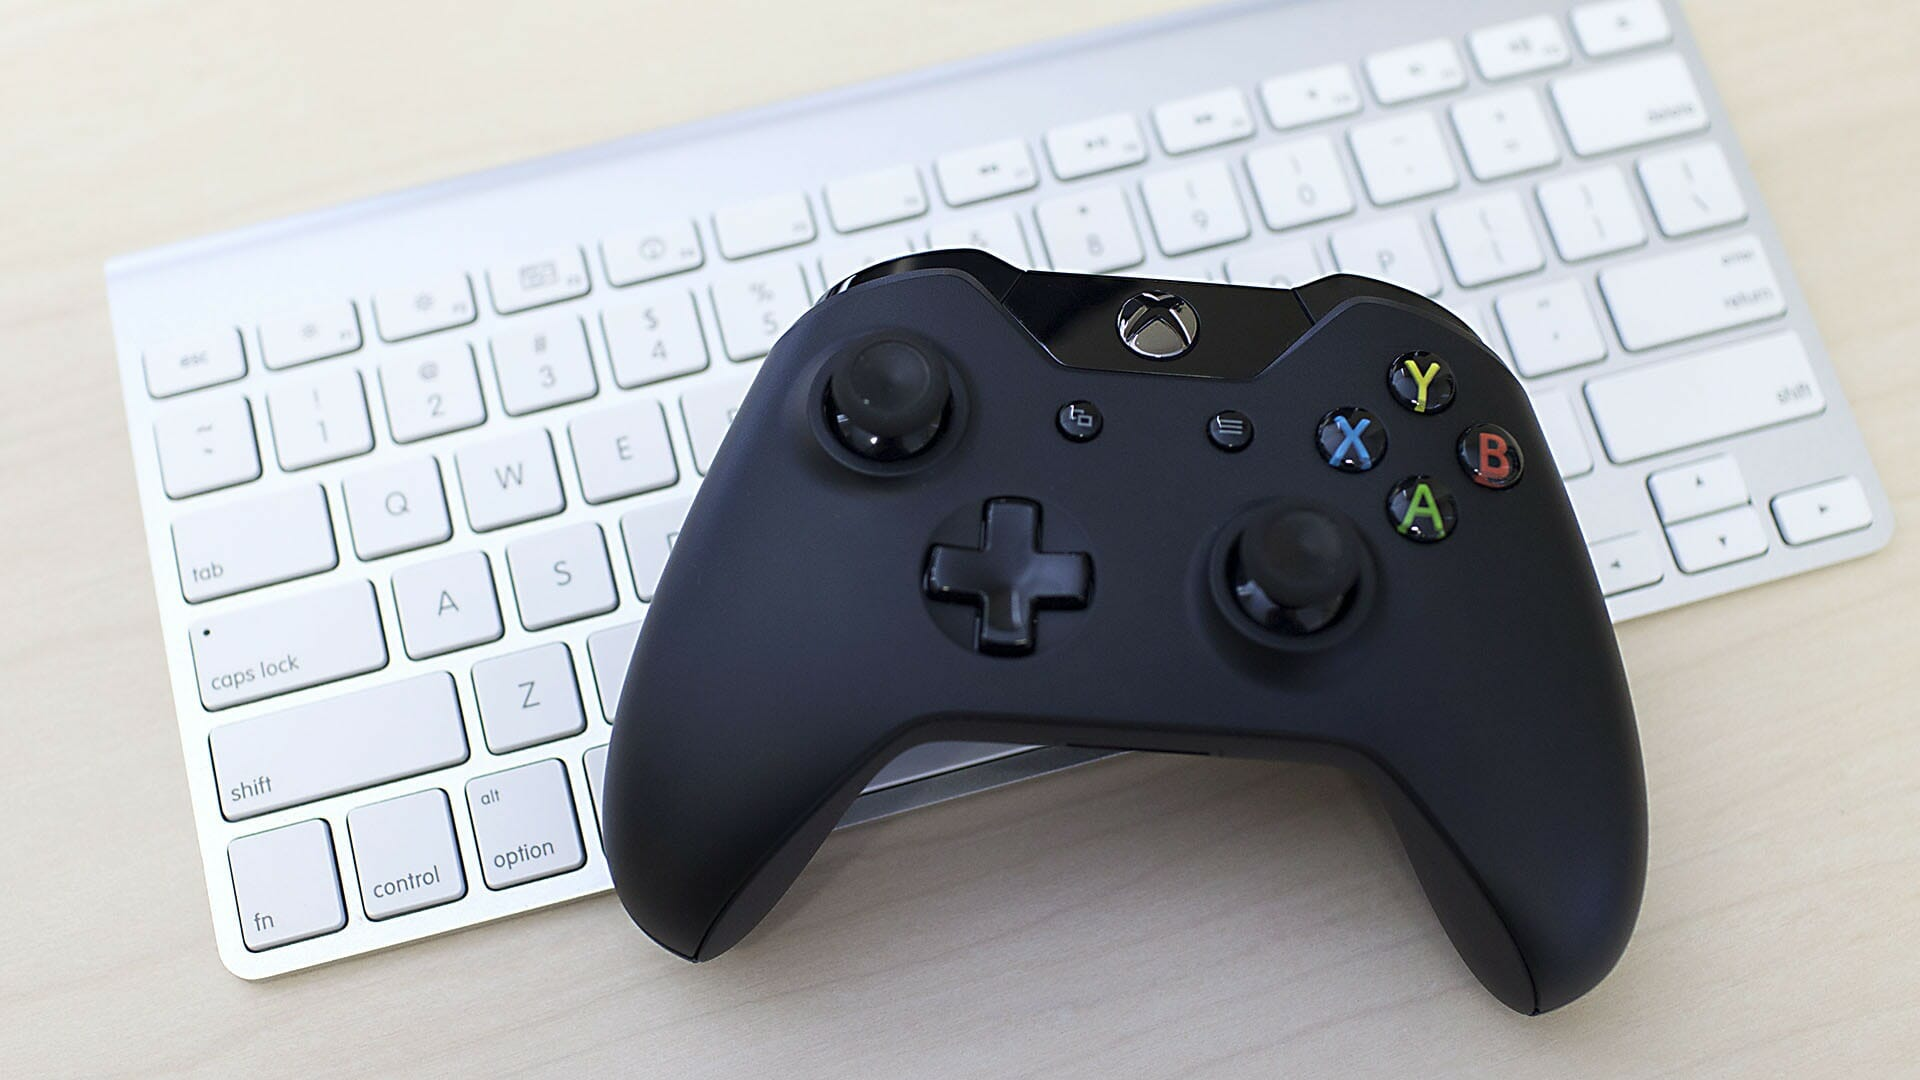 Install Xbox Controller Driver On Pc And Fix Common Errors Itechgyan Remote Wiring Diagram Problems Related To